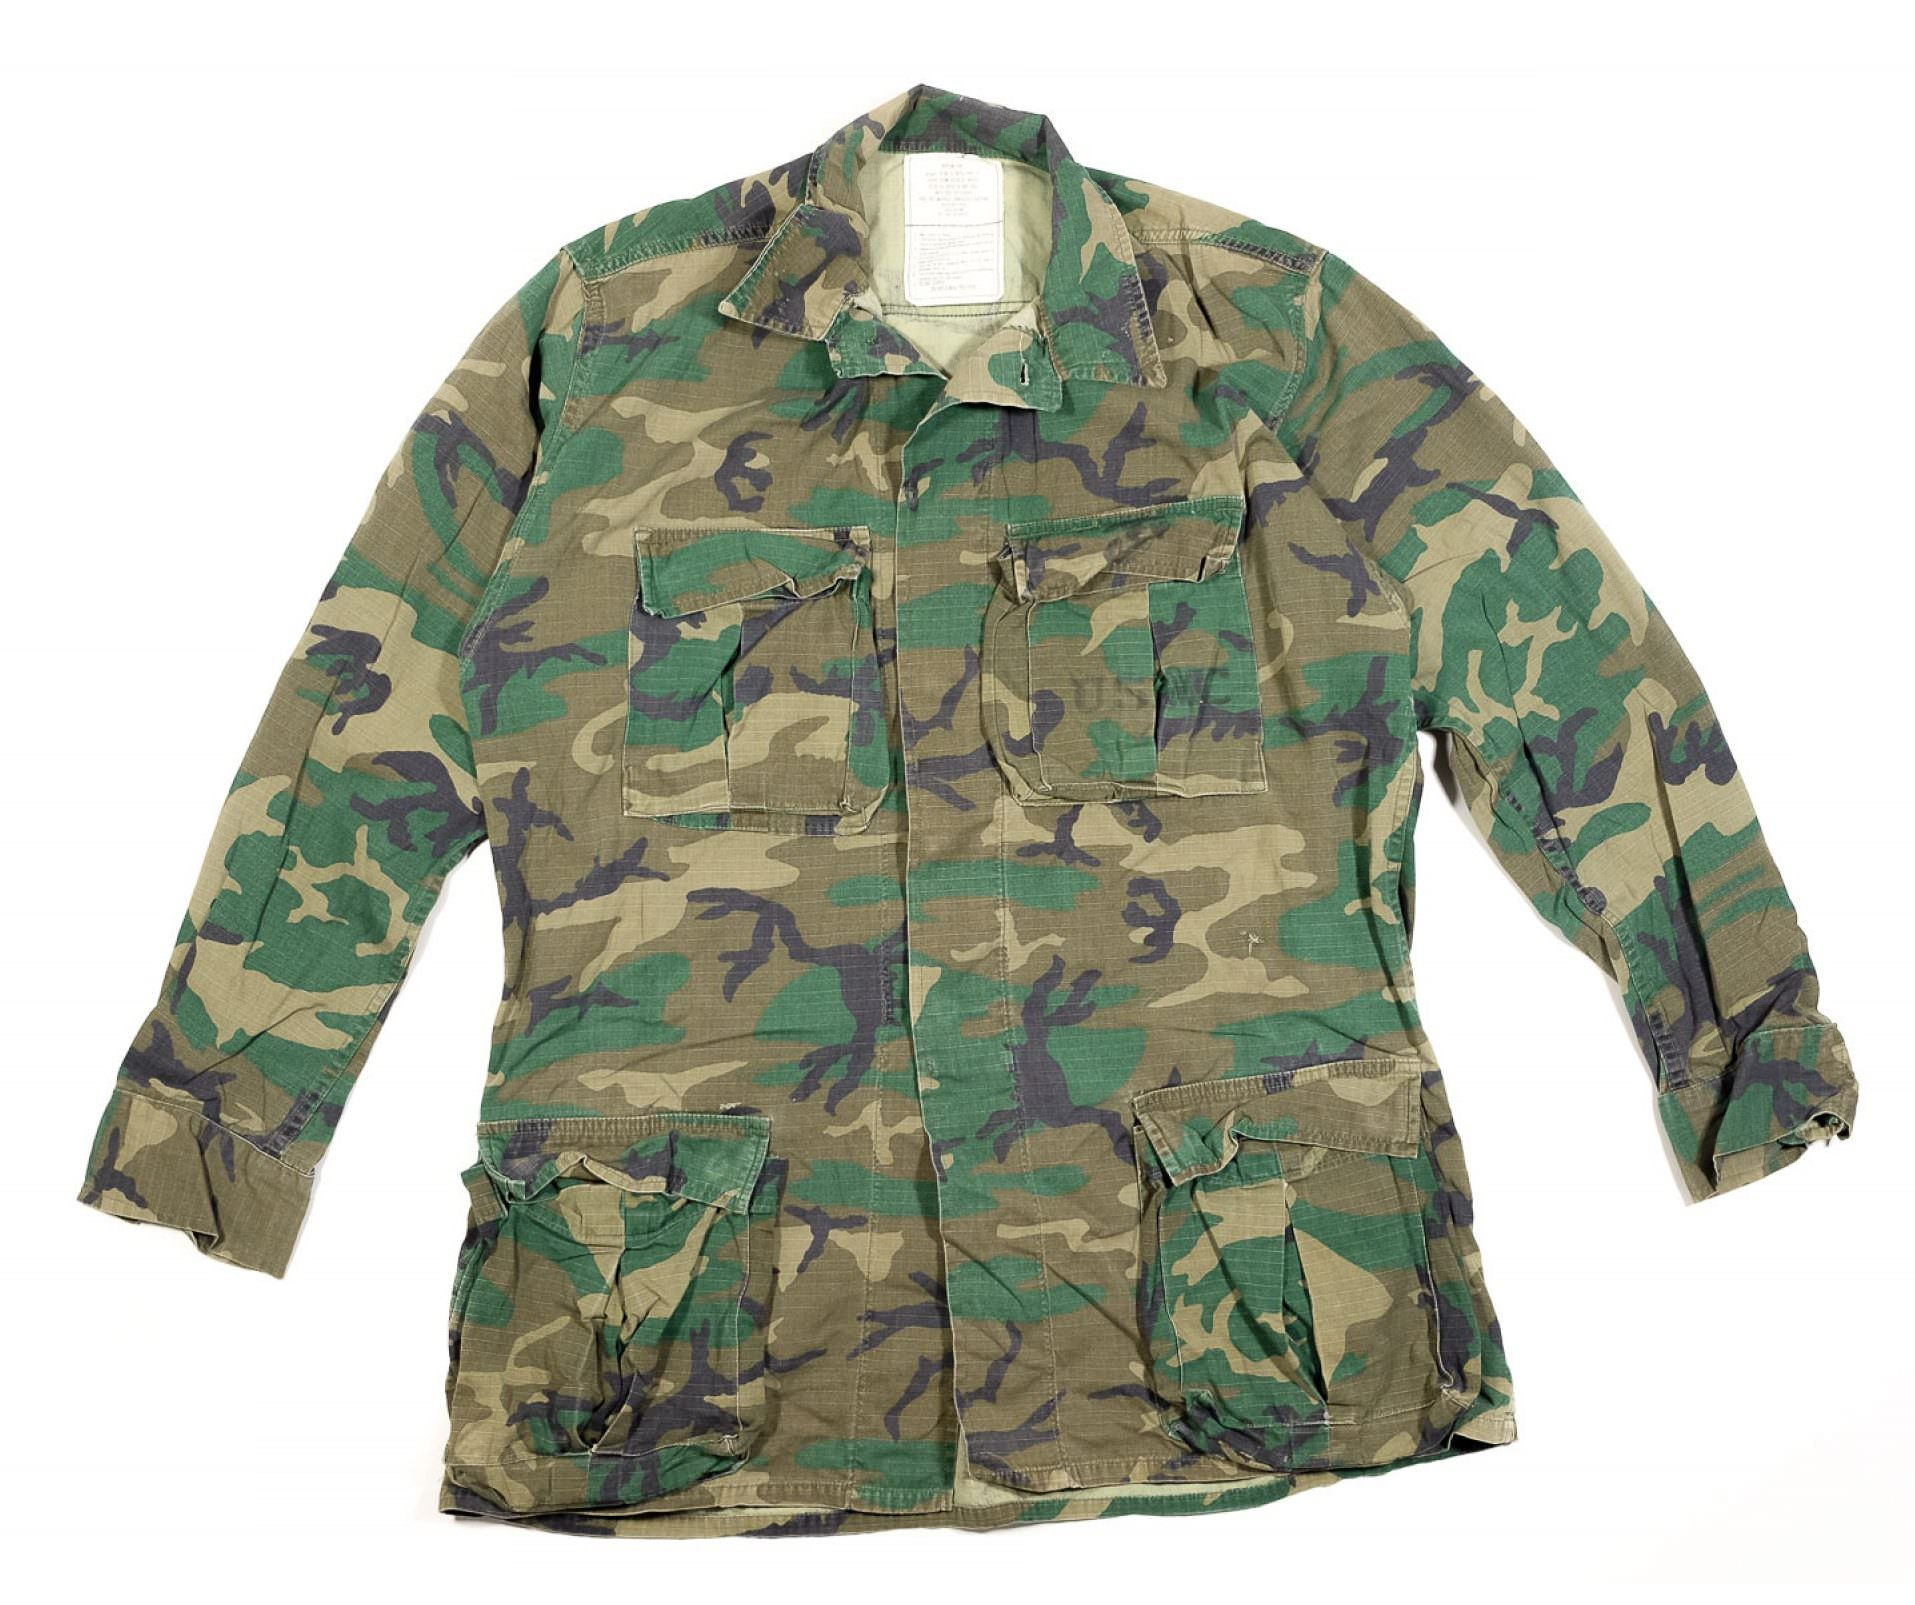 Jungle Jacket Type 3 highland marron ERDL camo